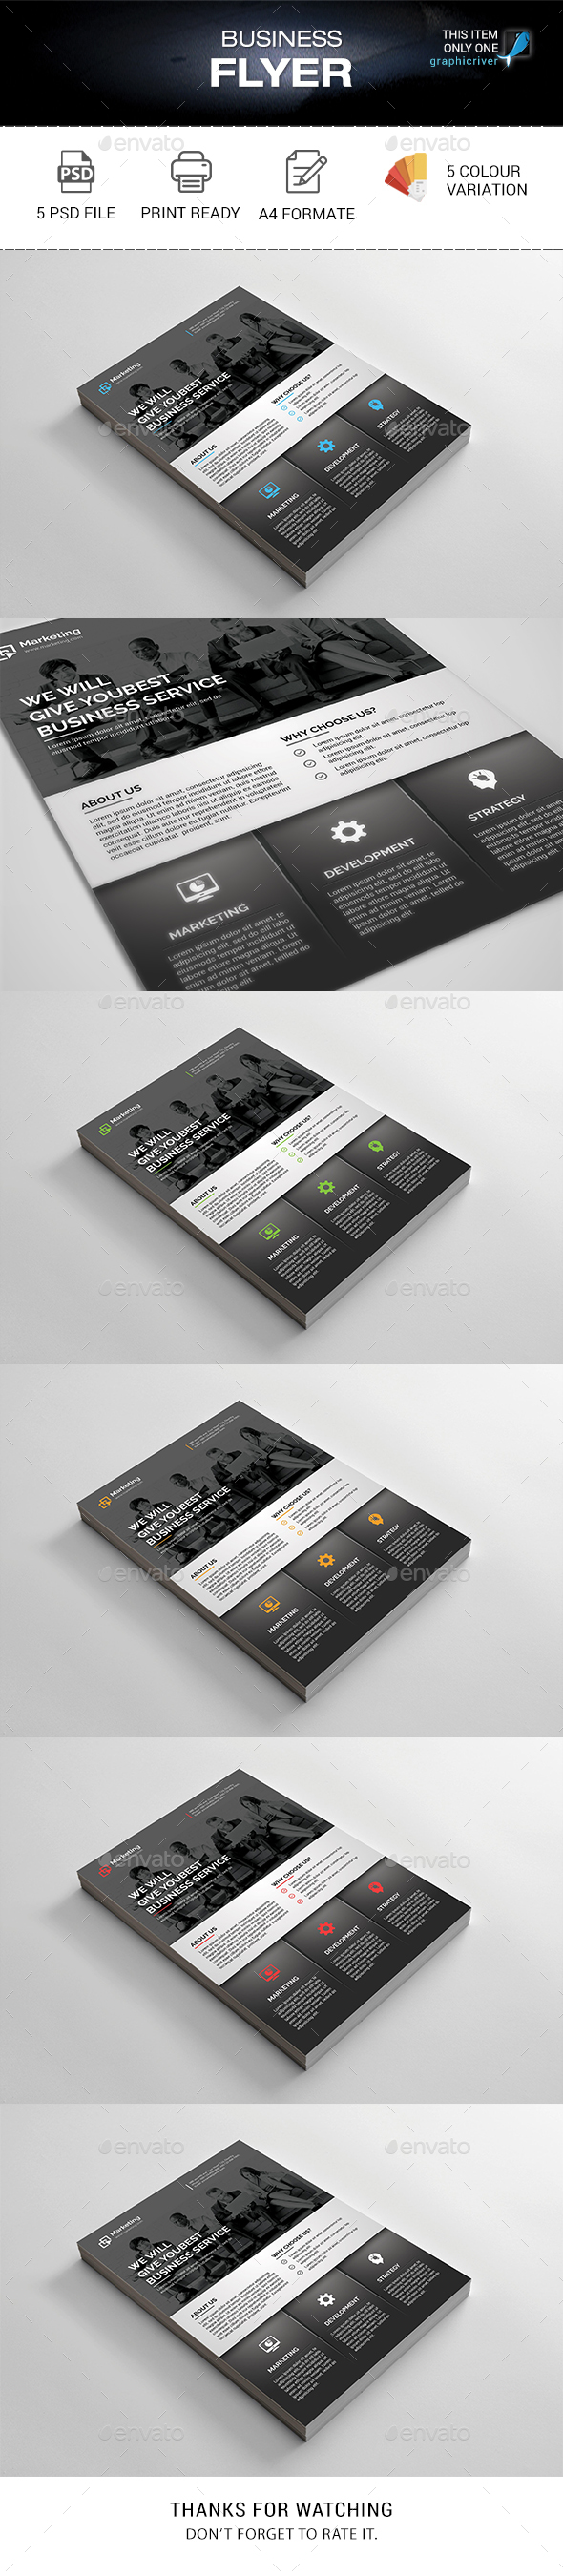 Business Flyer - Corporate Flyers